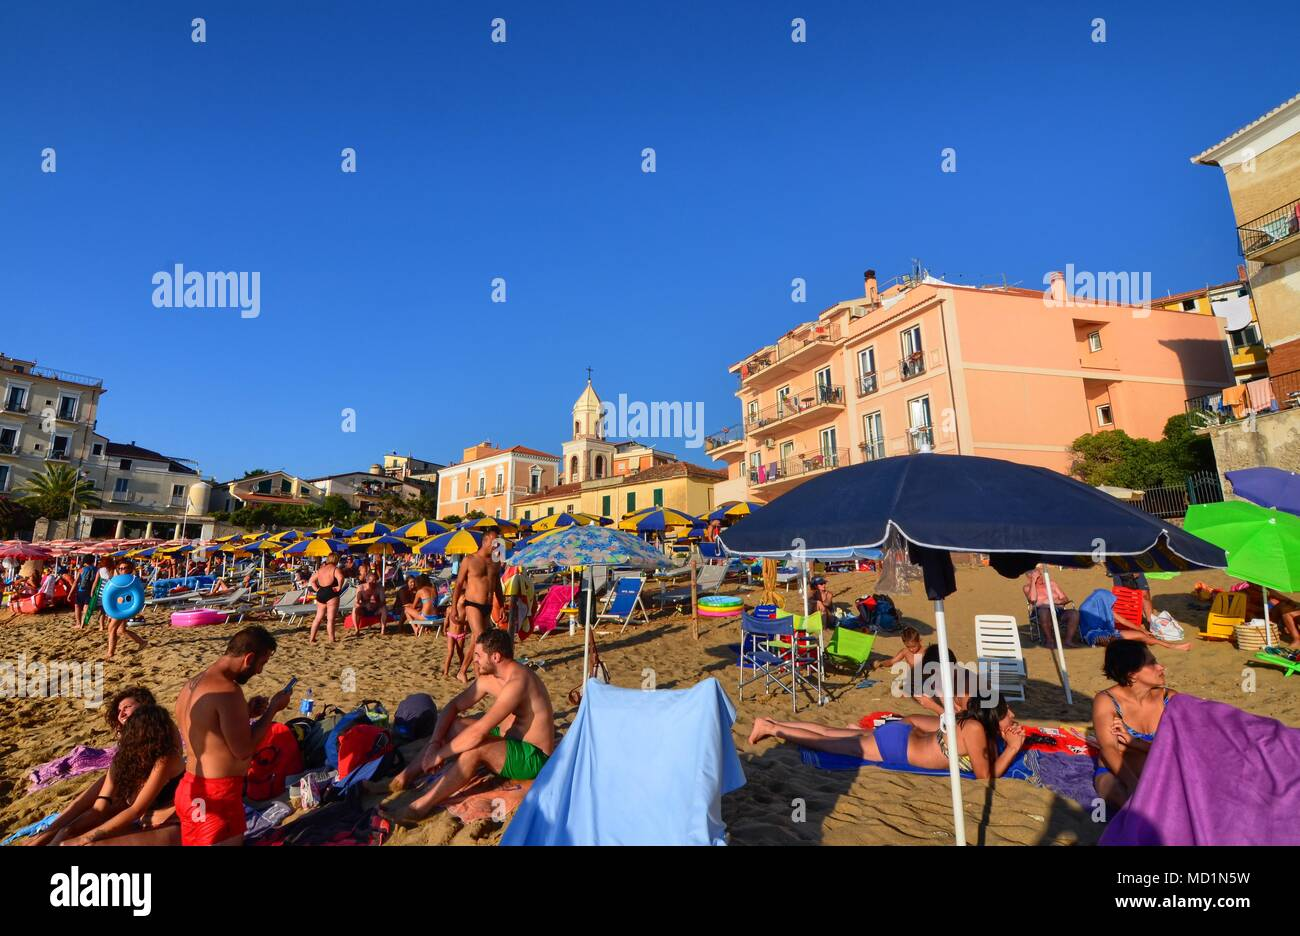 Santa Maria di Castellabate, Campania region, Italy August 15 2016. The beach in the center of the village with houses close to the sea. Stock Photo